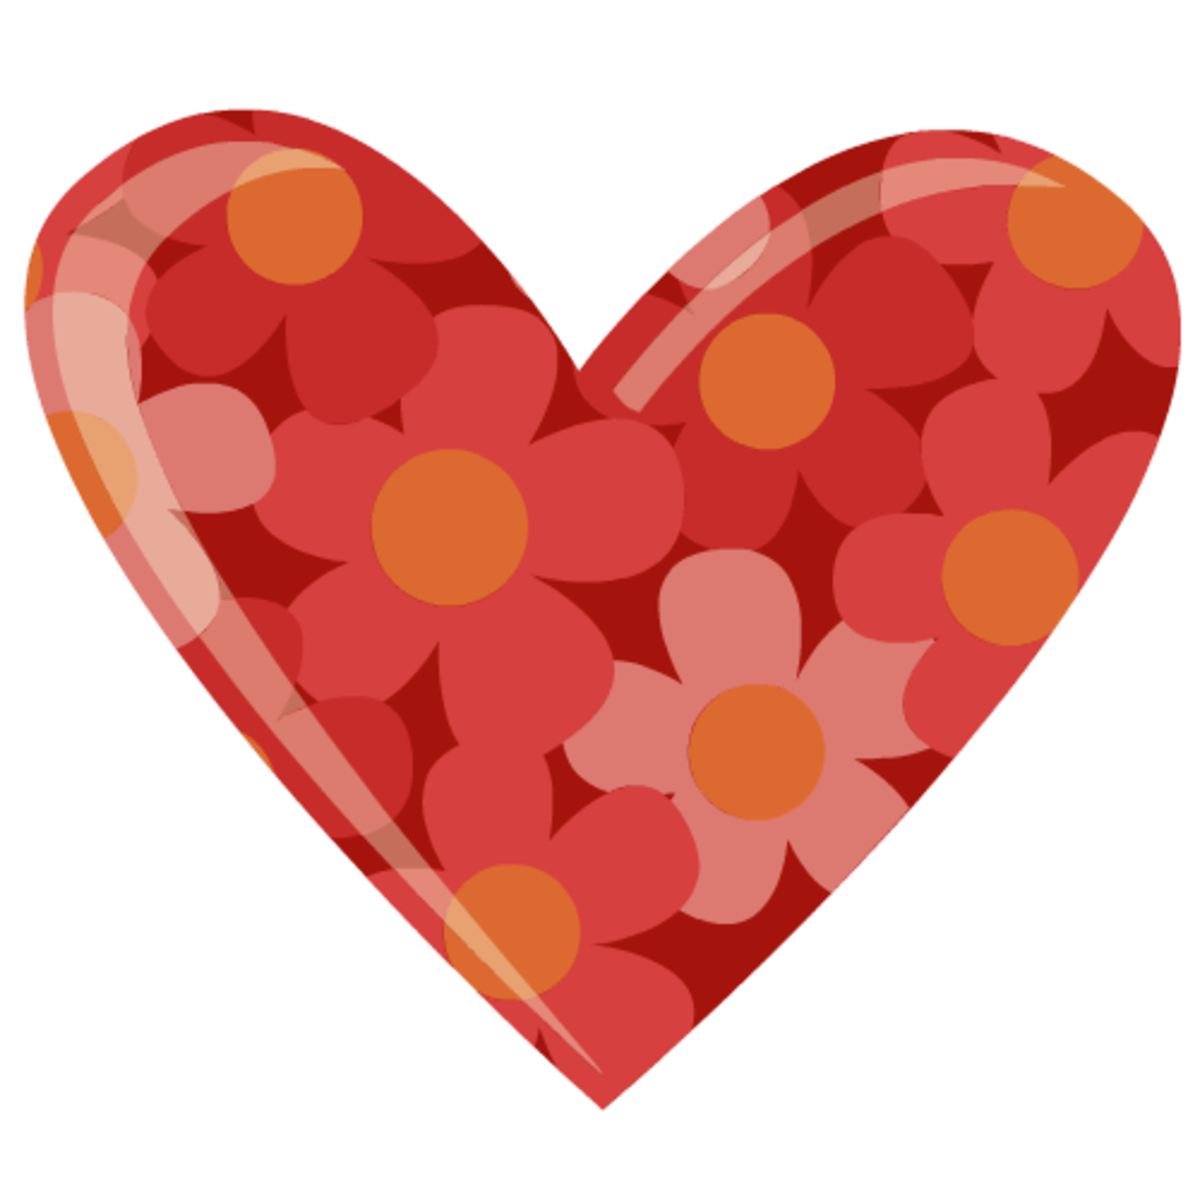 Flower heart clipart